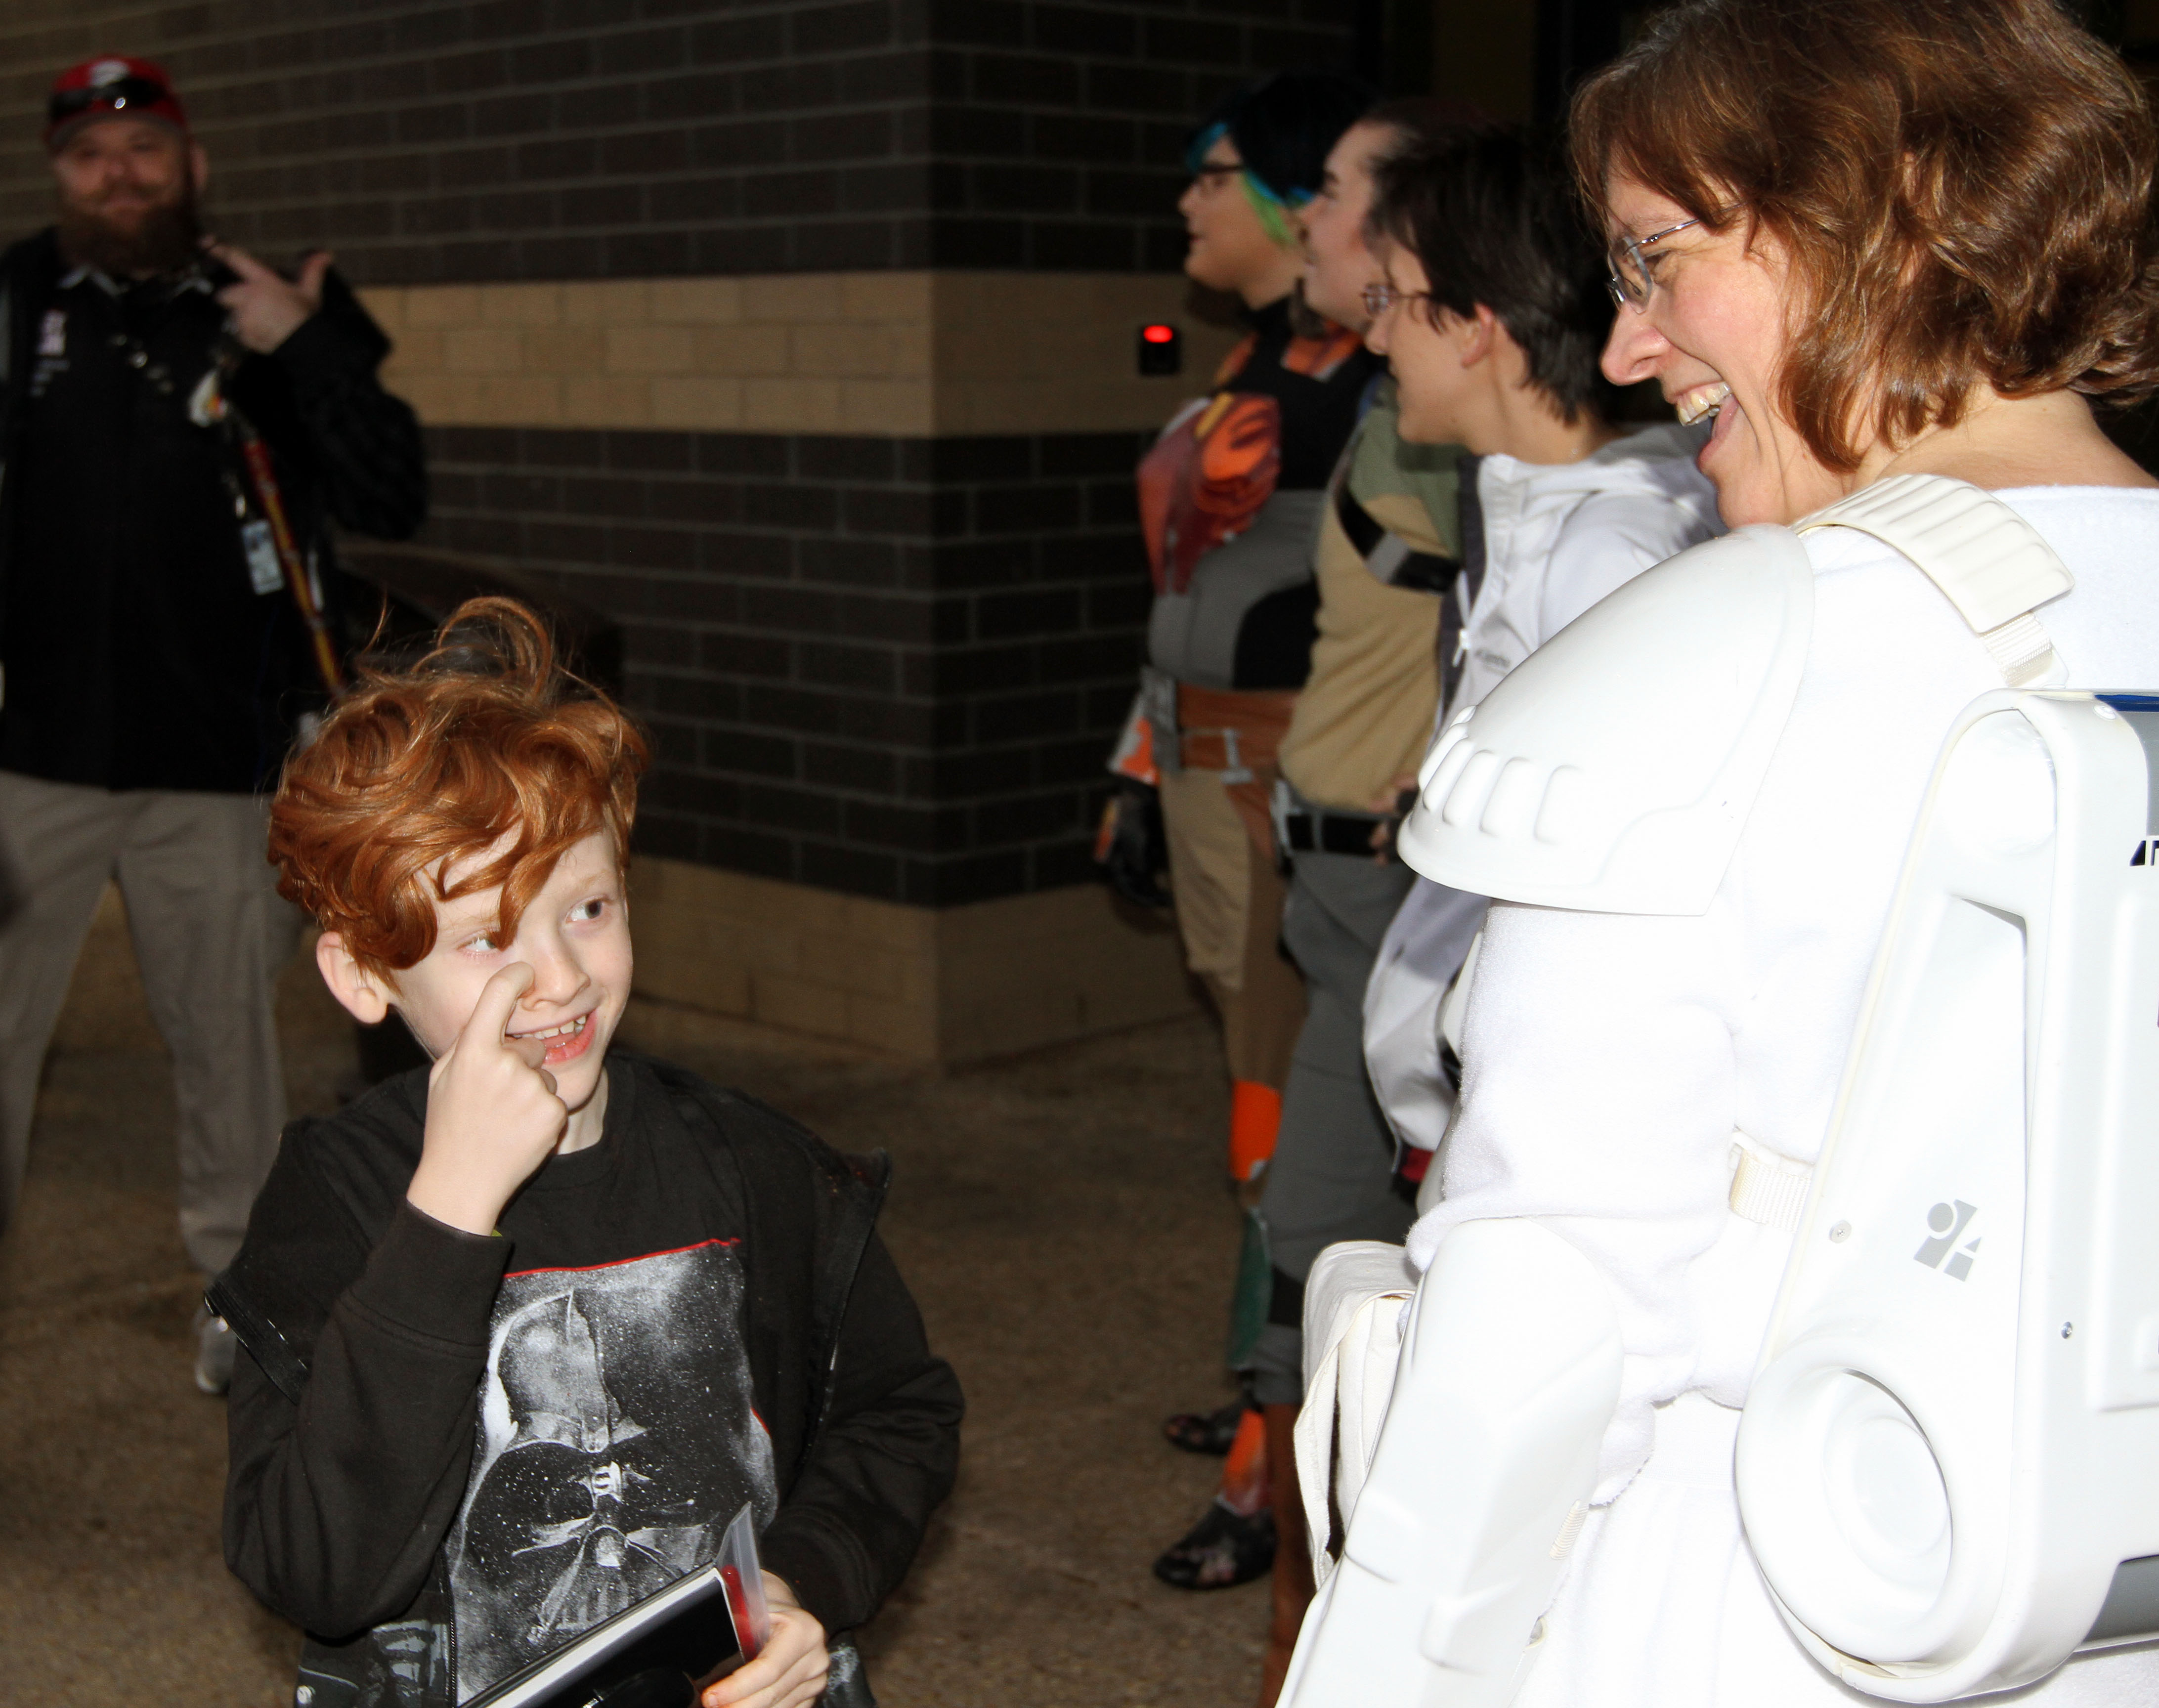 "A young ""Star Wars"" fan interacts with costumer Lori Frye at the Dec. 17 premiere of ""The Force Awakens"" at the Alamo Drafthouse Cinema in Ashburn, Va. The best part of costuming is the reaction from children, says Frye, but adults also revert back to their childhoods when they see a reminder of a beloved movie. Photo by Larisa Epatko"